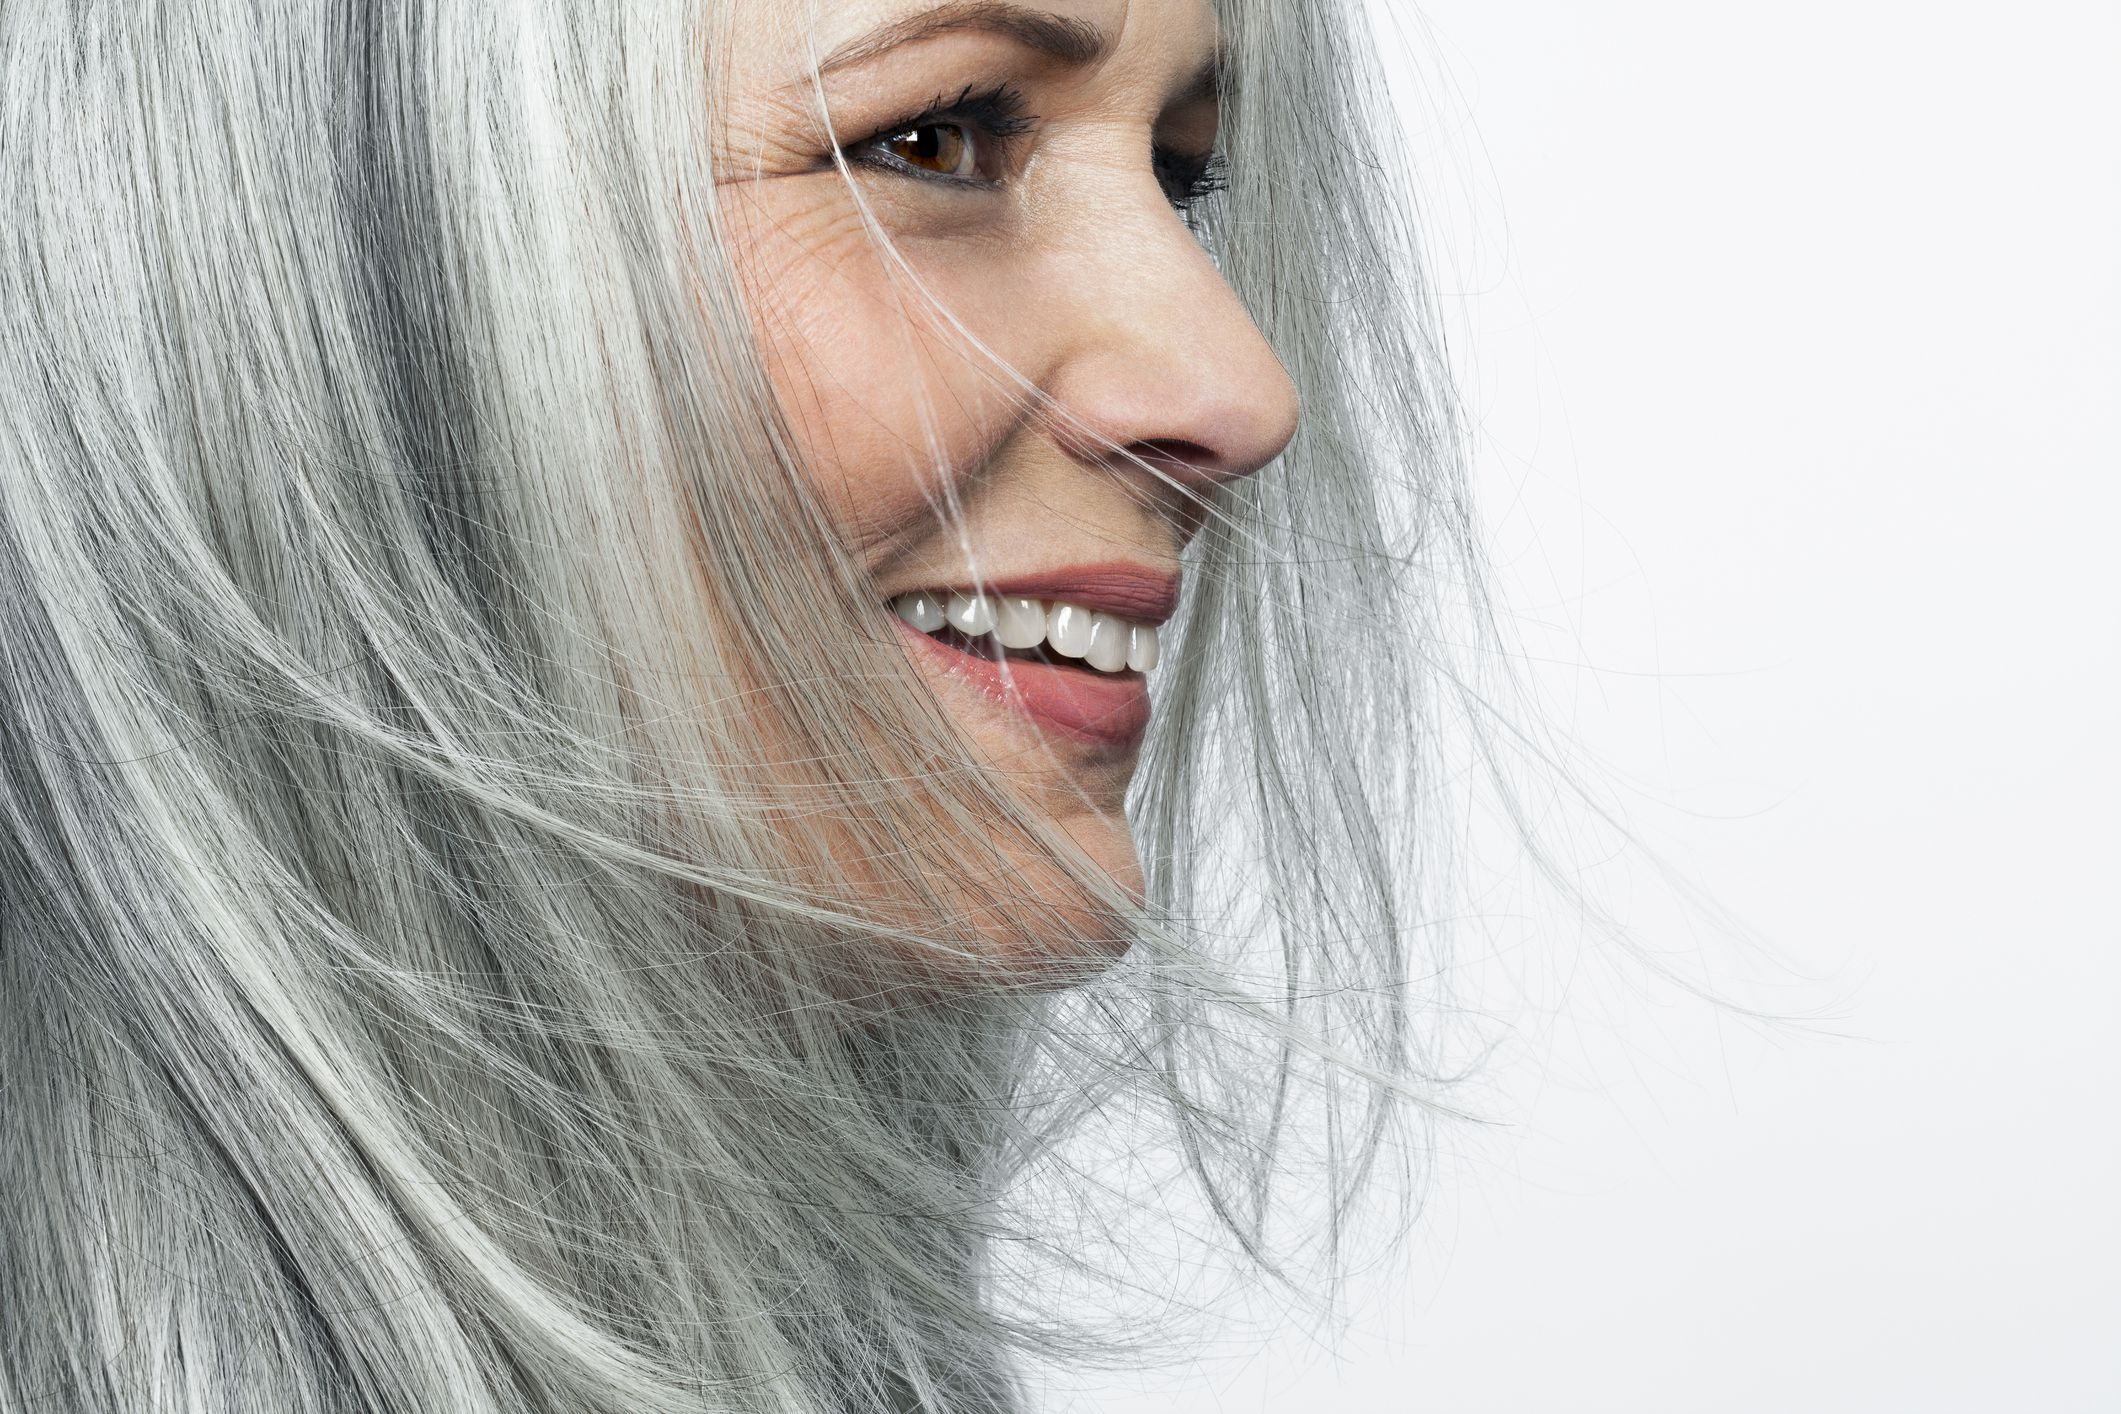 Premature-gray-hair-Heres-how-to-get-rid-of-gray-hair-permanently-and-naturally.